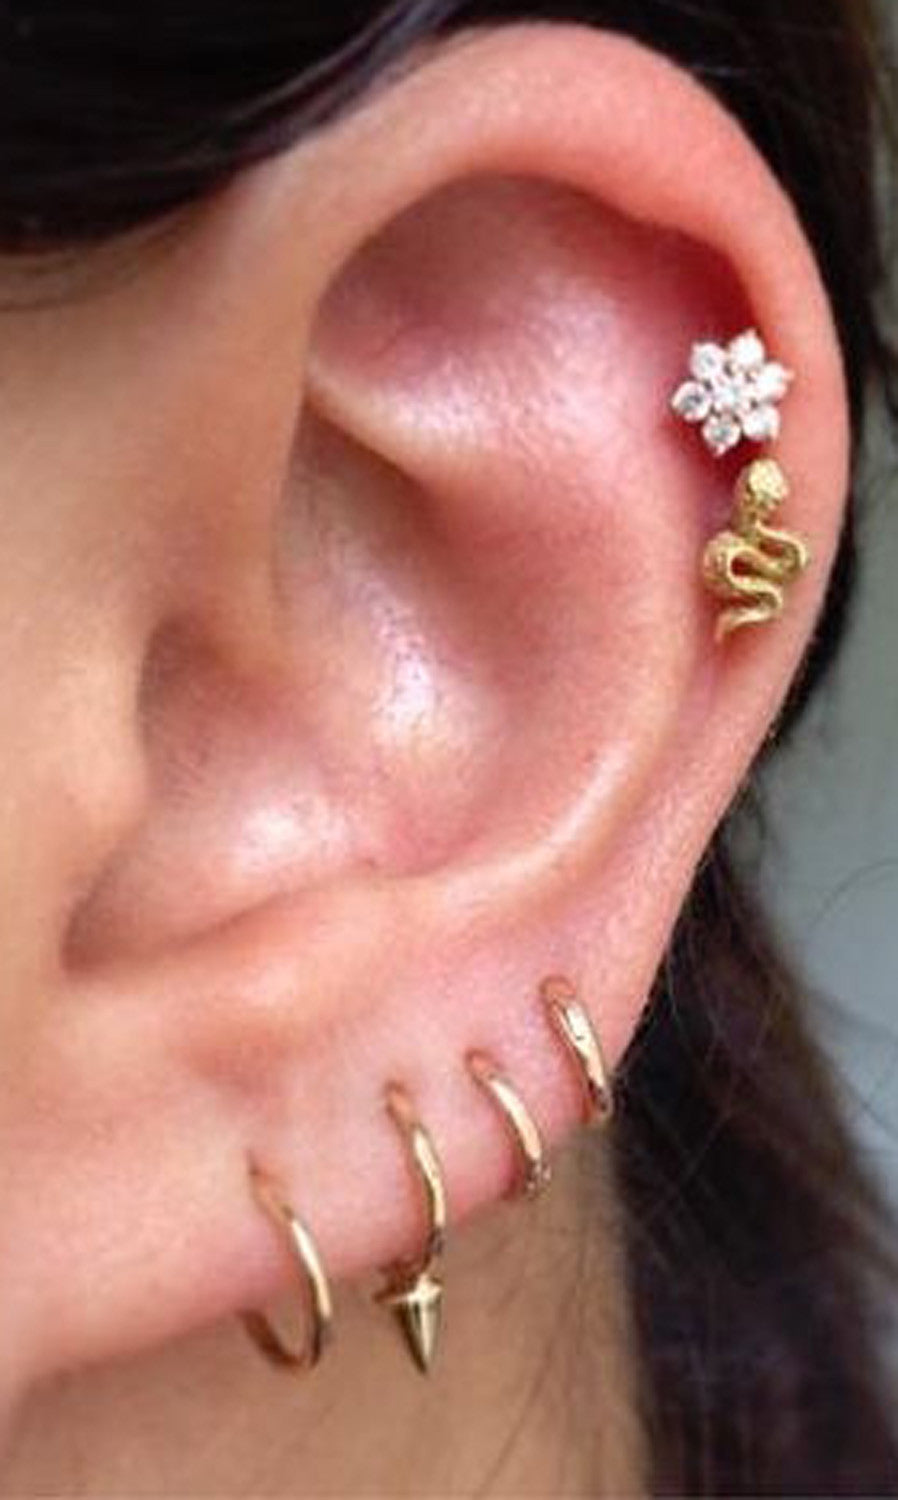 itm stud piercing tragus earring cartilage is gem s ear top fan loading effect image upper